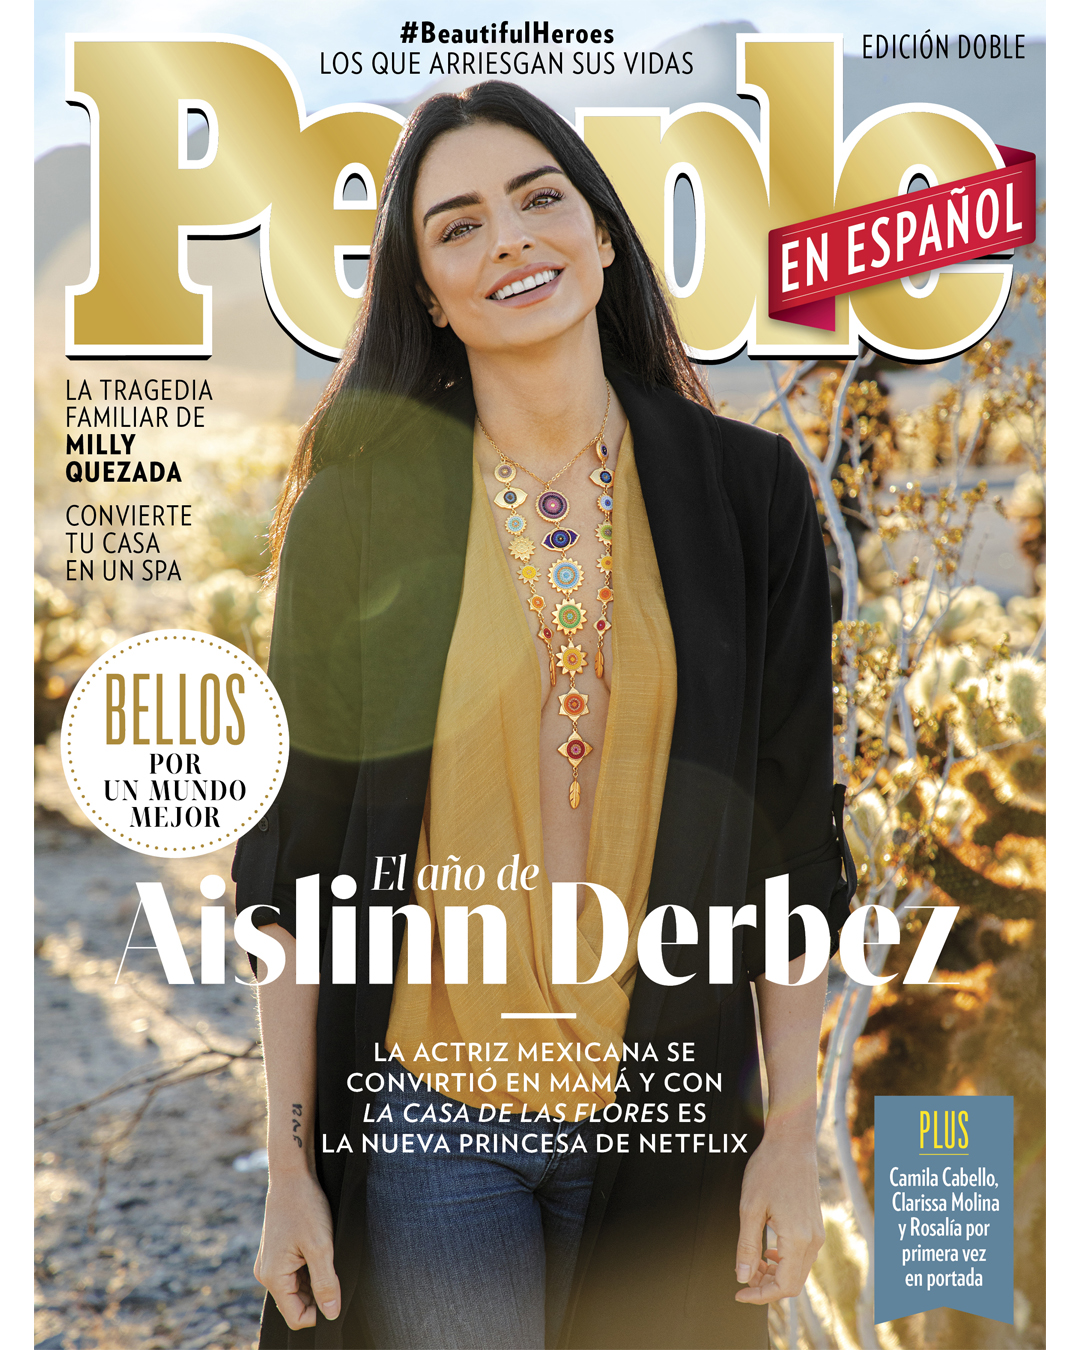 Aislinn Derbez - To be Used only with the reveal of the Cover